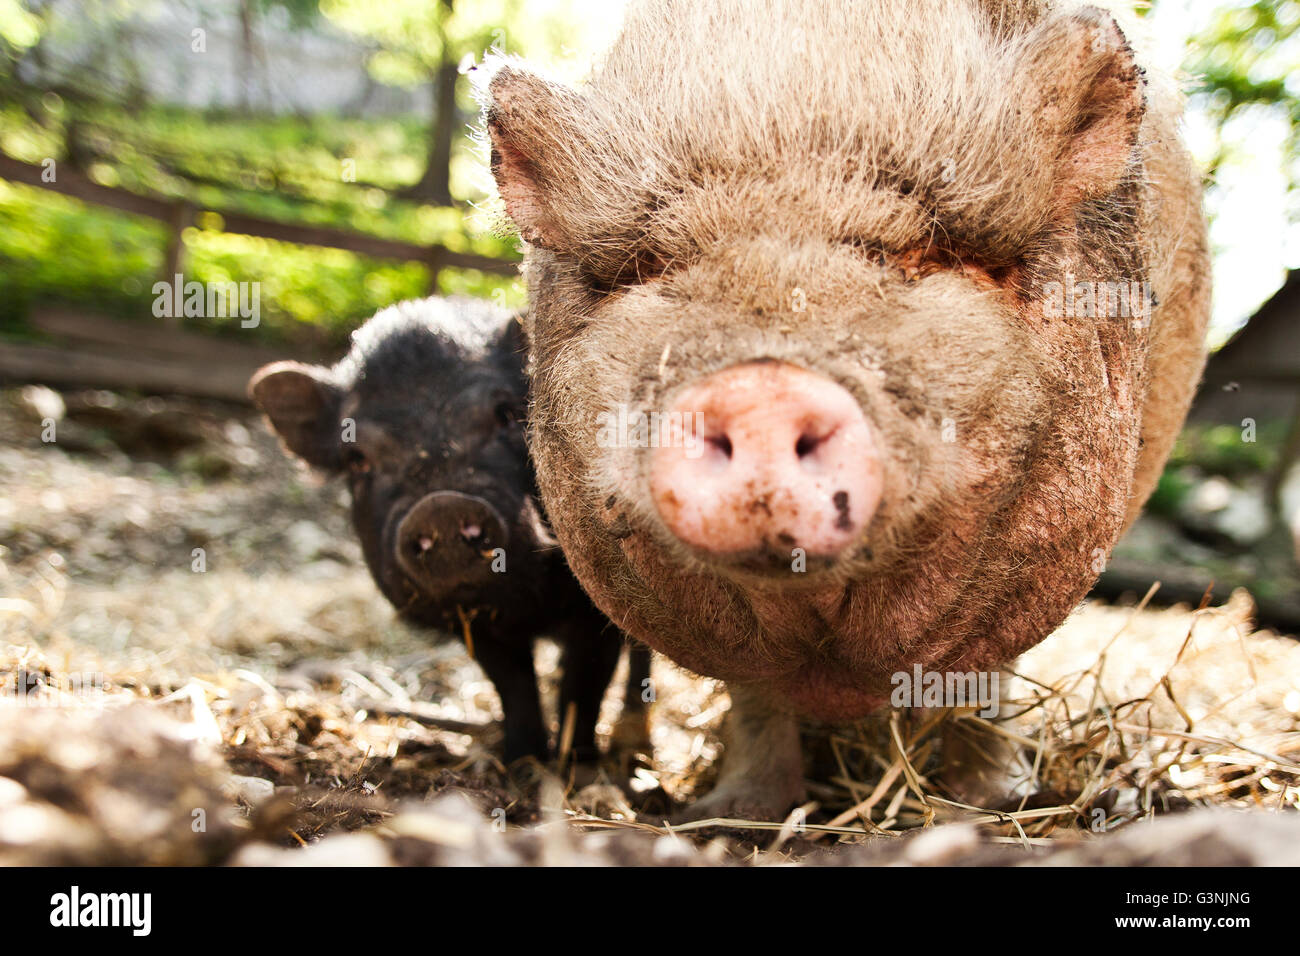 Pot-bellied pig, des profils et des porcelets, zoo Ernstbrunn, Basse Autriche, Autriche, Europe Photo Stock